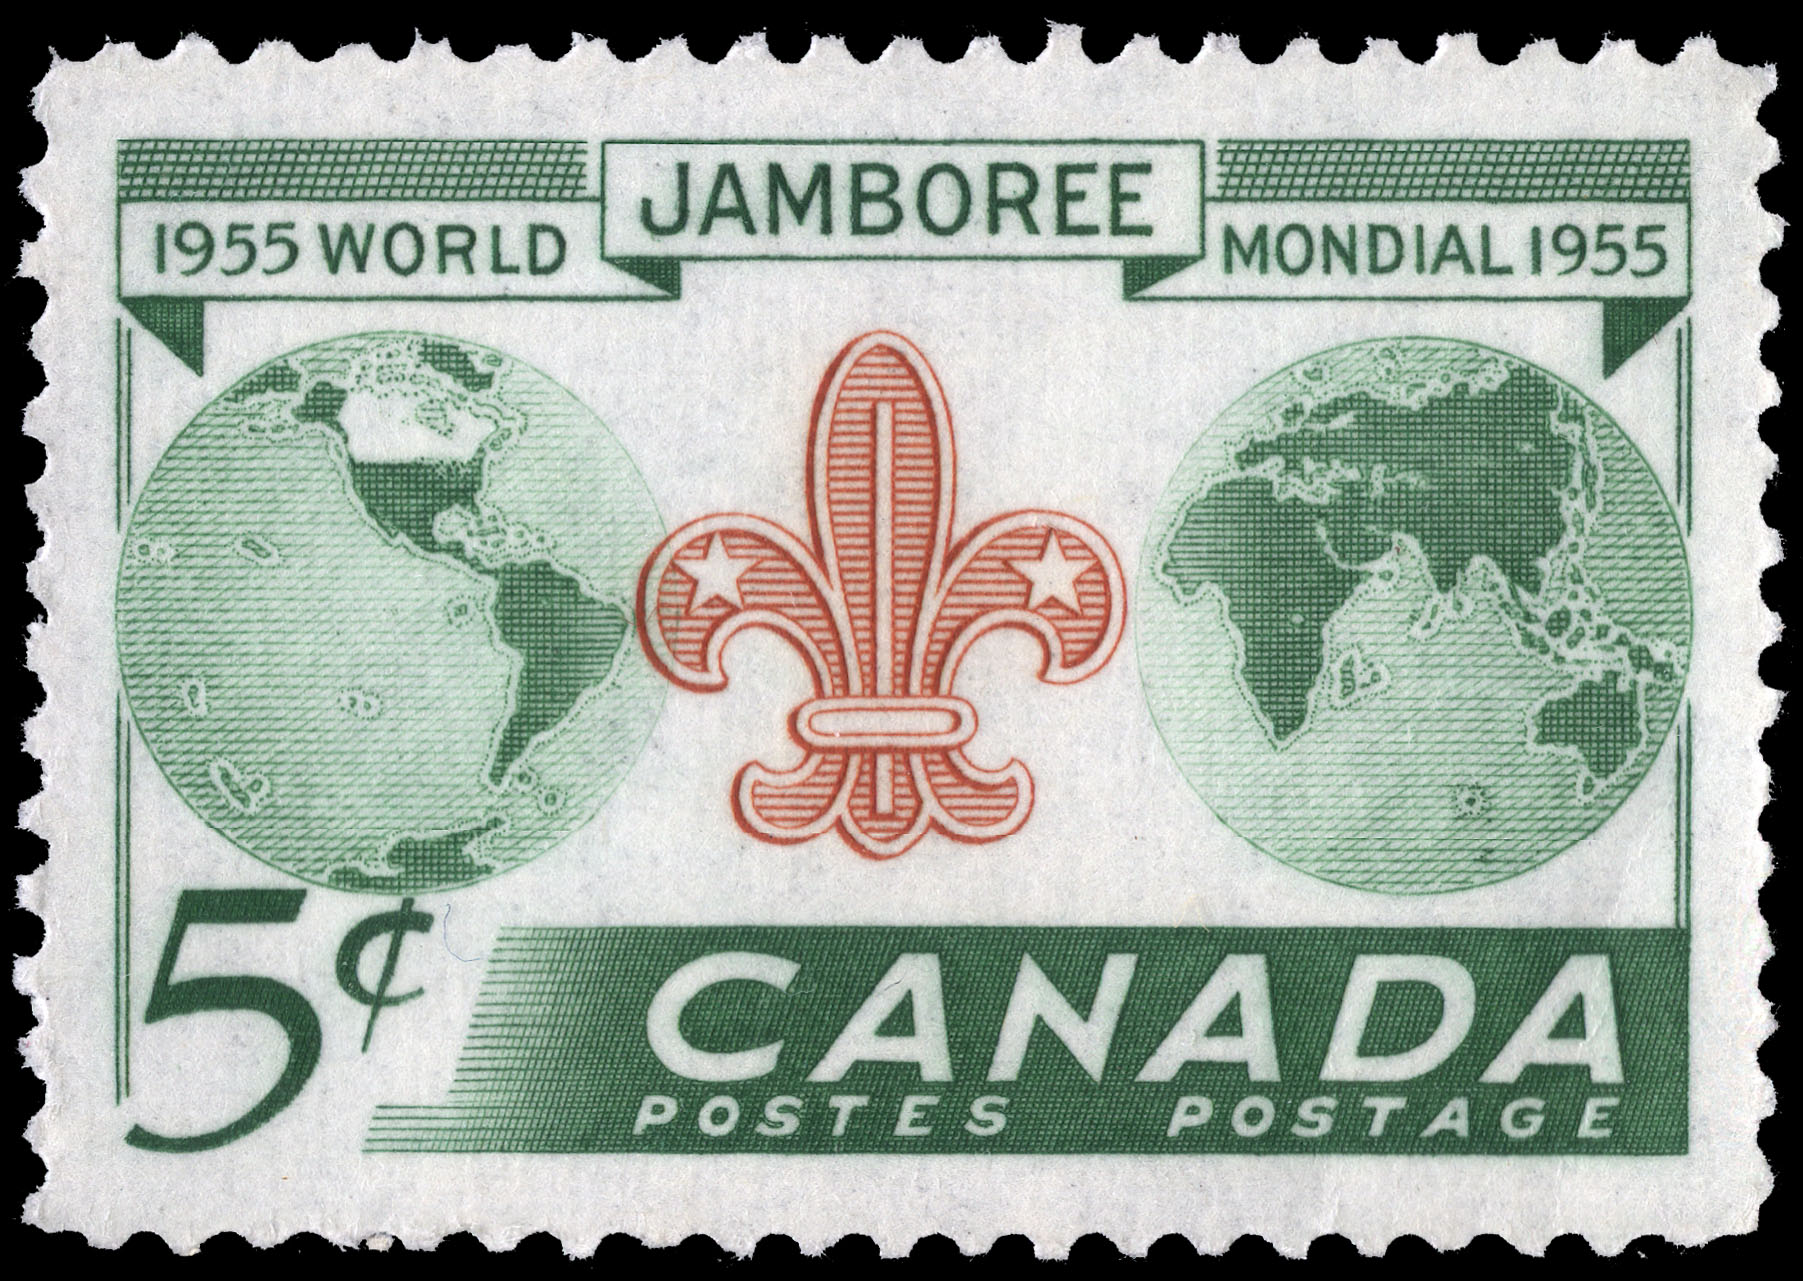 World Jamboree, 1955 Canada Postage Stamp